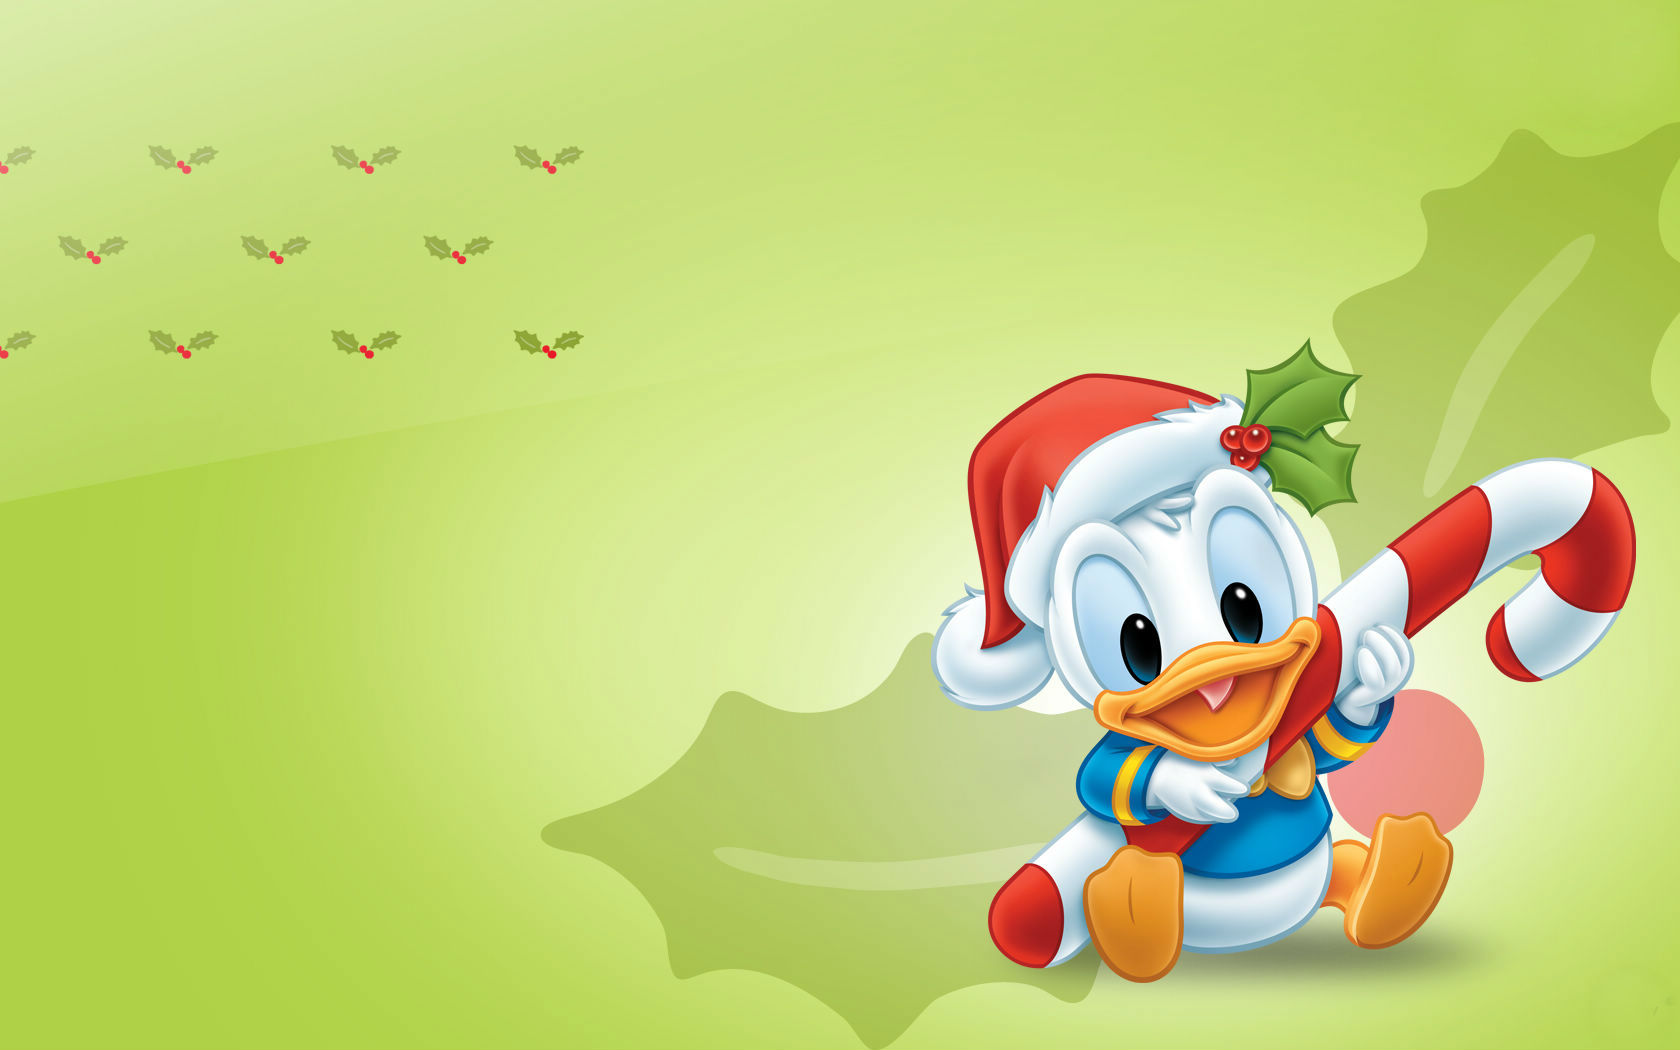 Hd wallpaper cartoon - Disney Cartoon Mickey